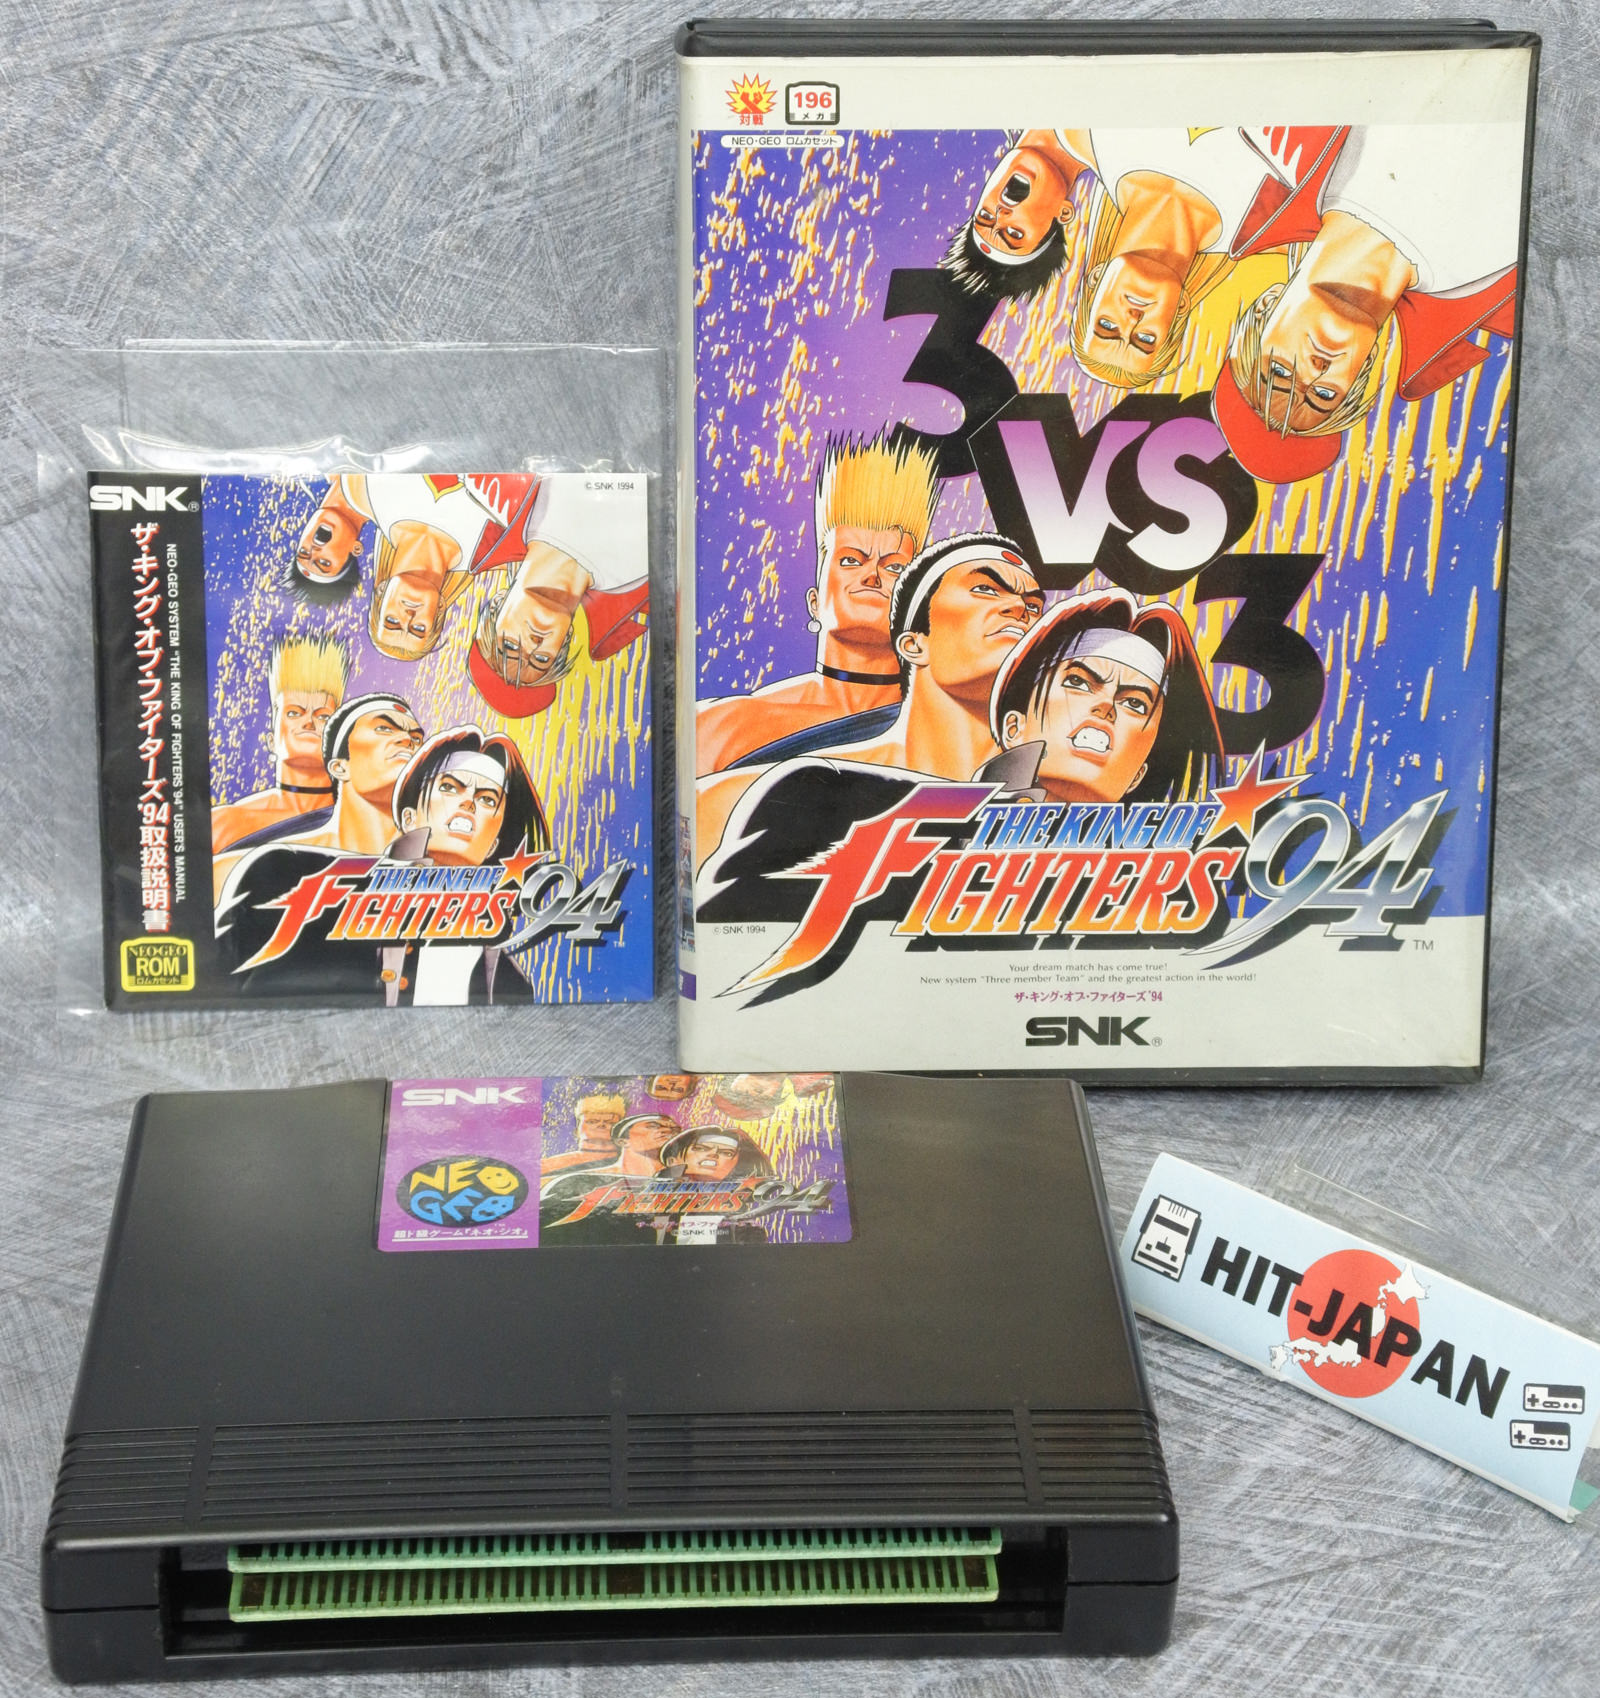 Details about THE KING OF FIGHTERS 94 KOF NEO GEO AES Ref/2930 FREE  SHIPPING SNK neogeo JAPAN